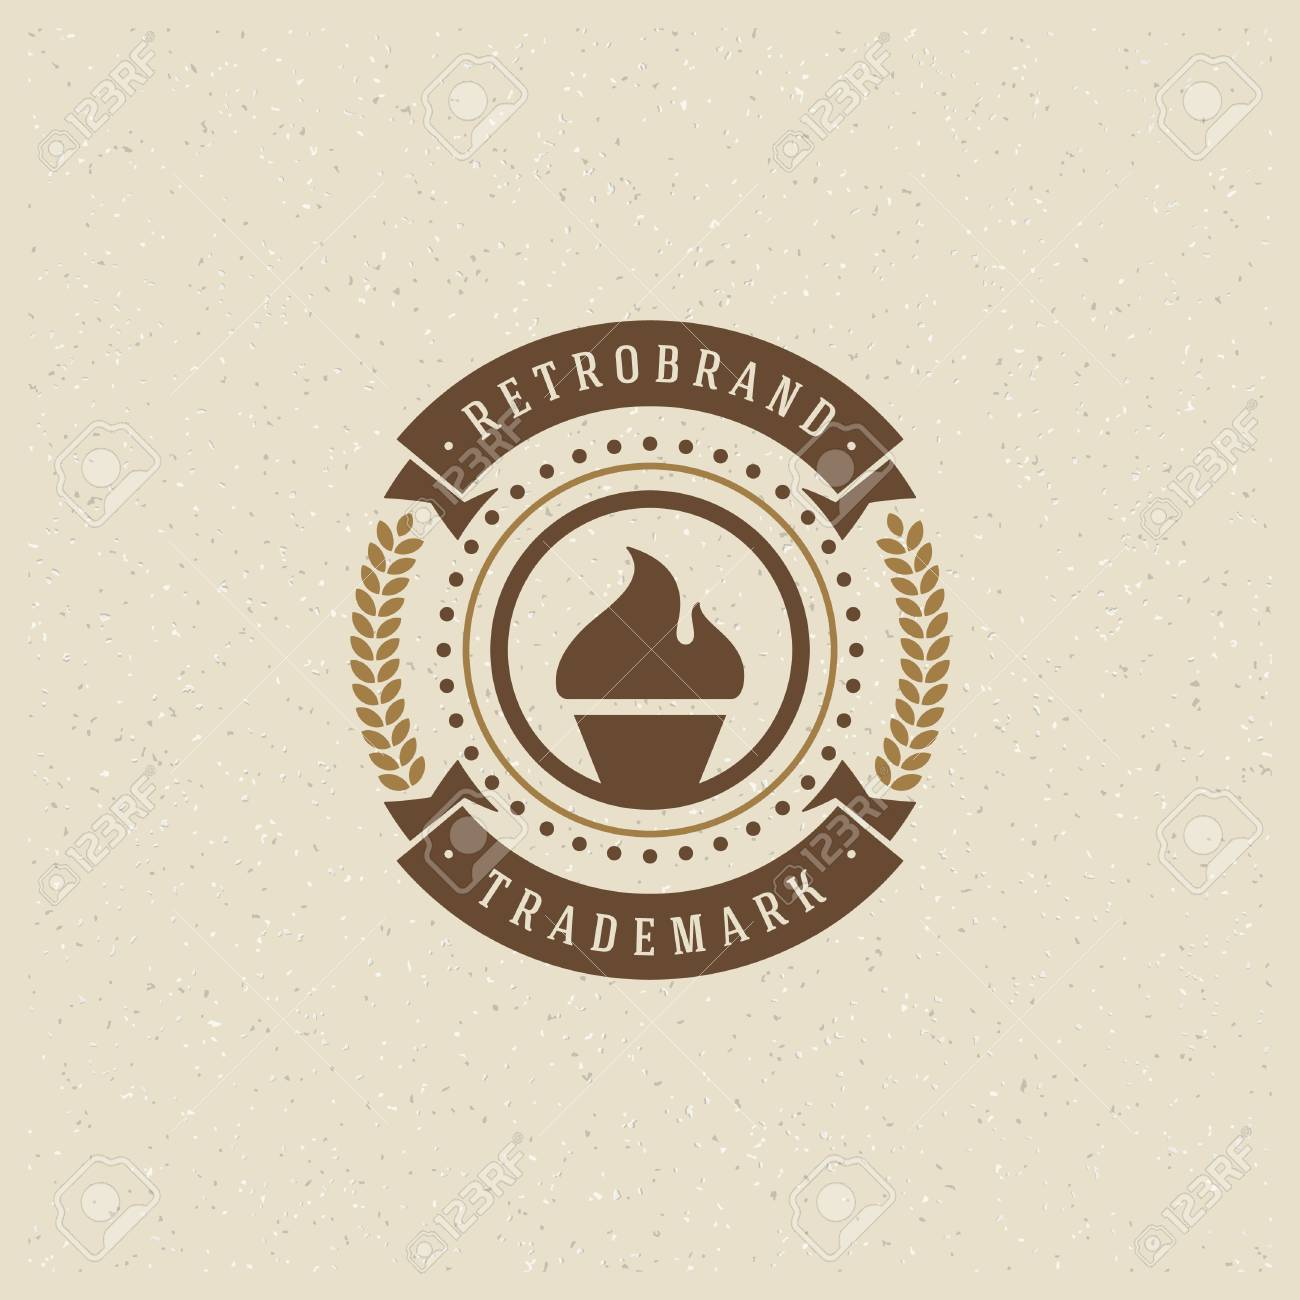 Bakery shop template vector design element vintage style label badge emblem